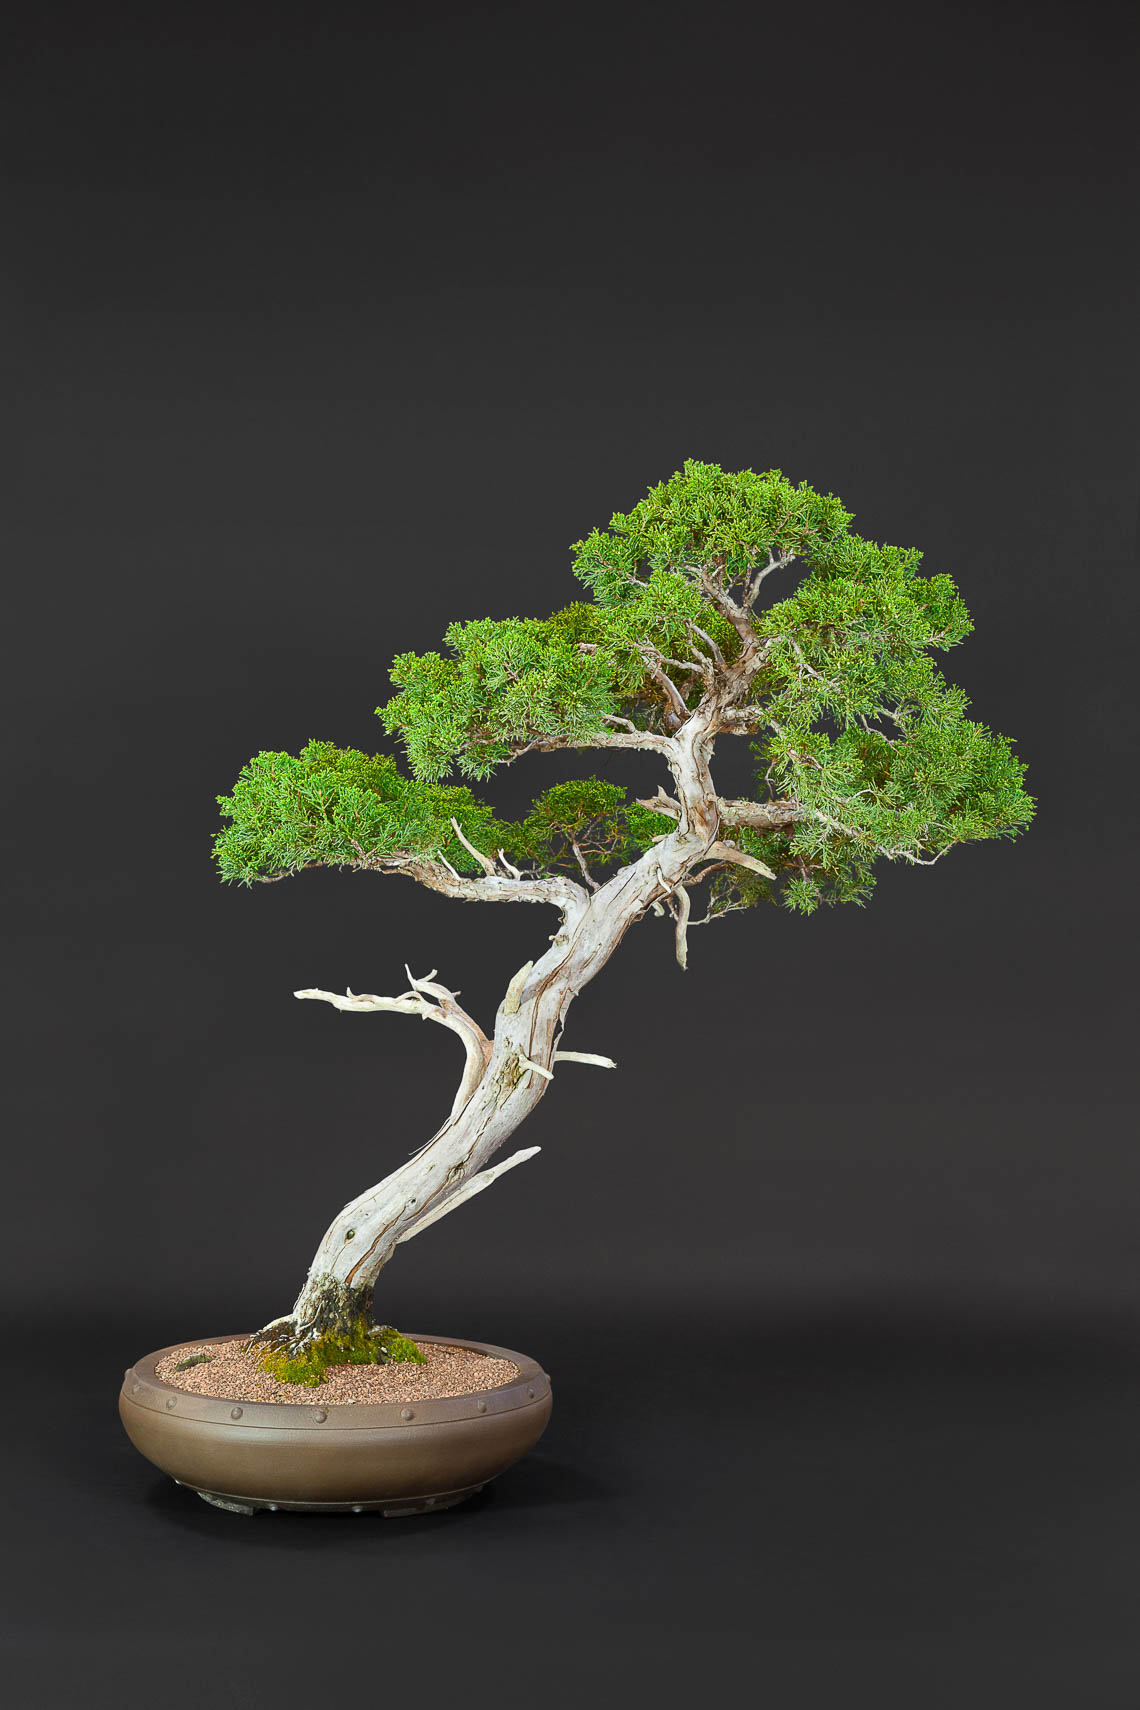 20180422_Bonsai-37-edit